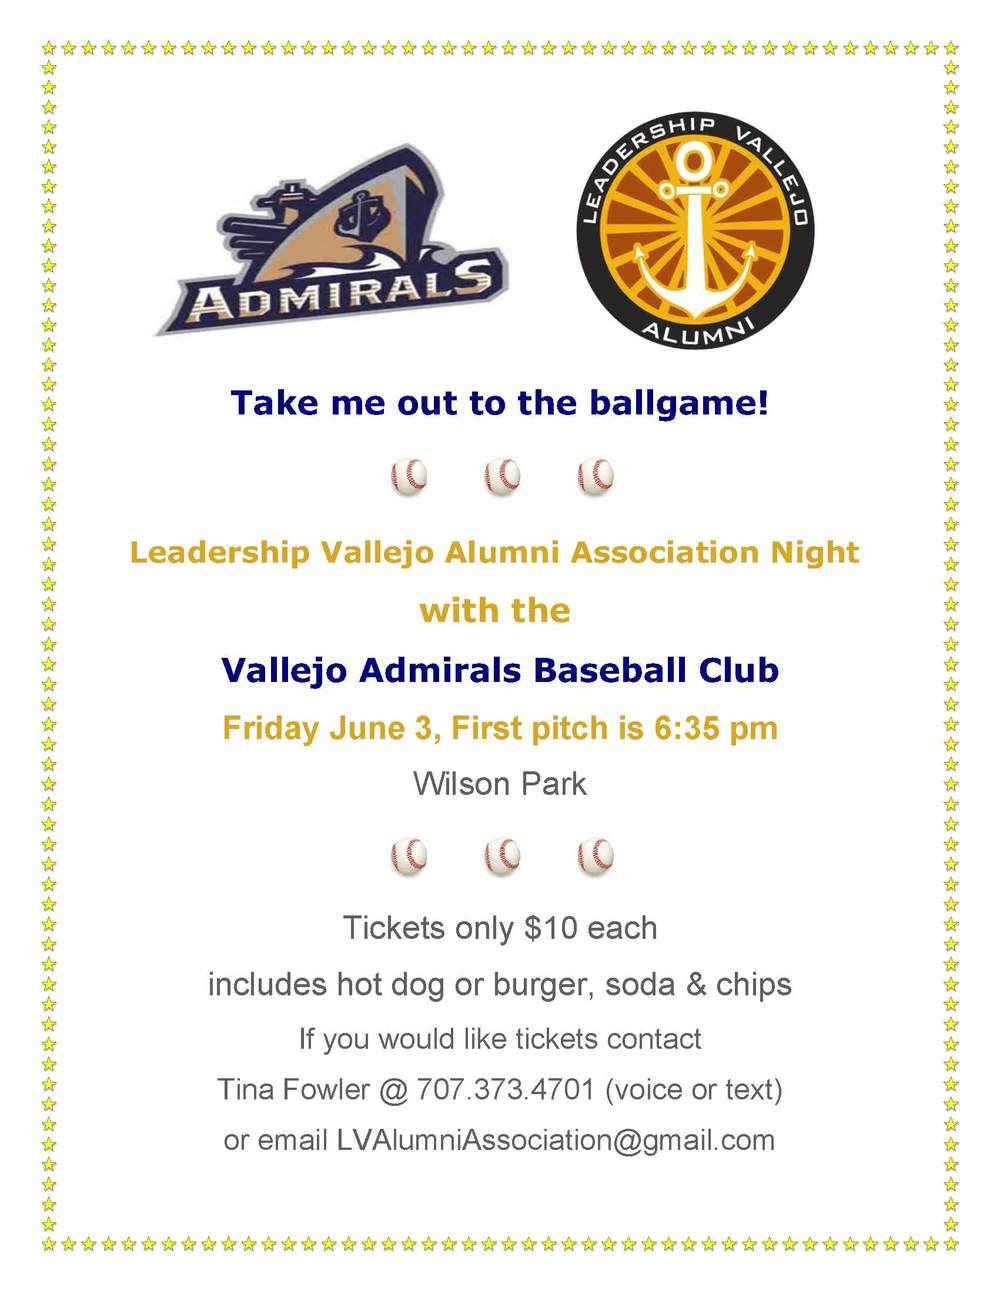 Click Here to Purchase Tickets to the Admirals Ball Game